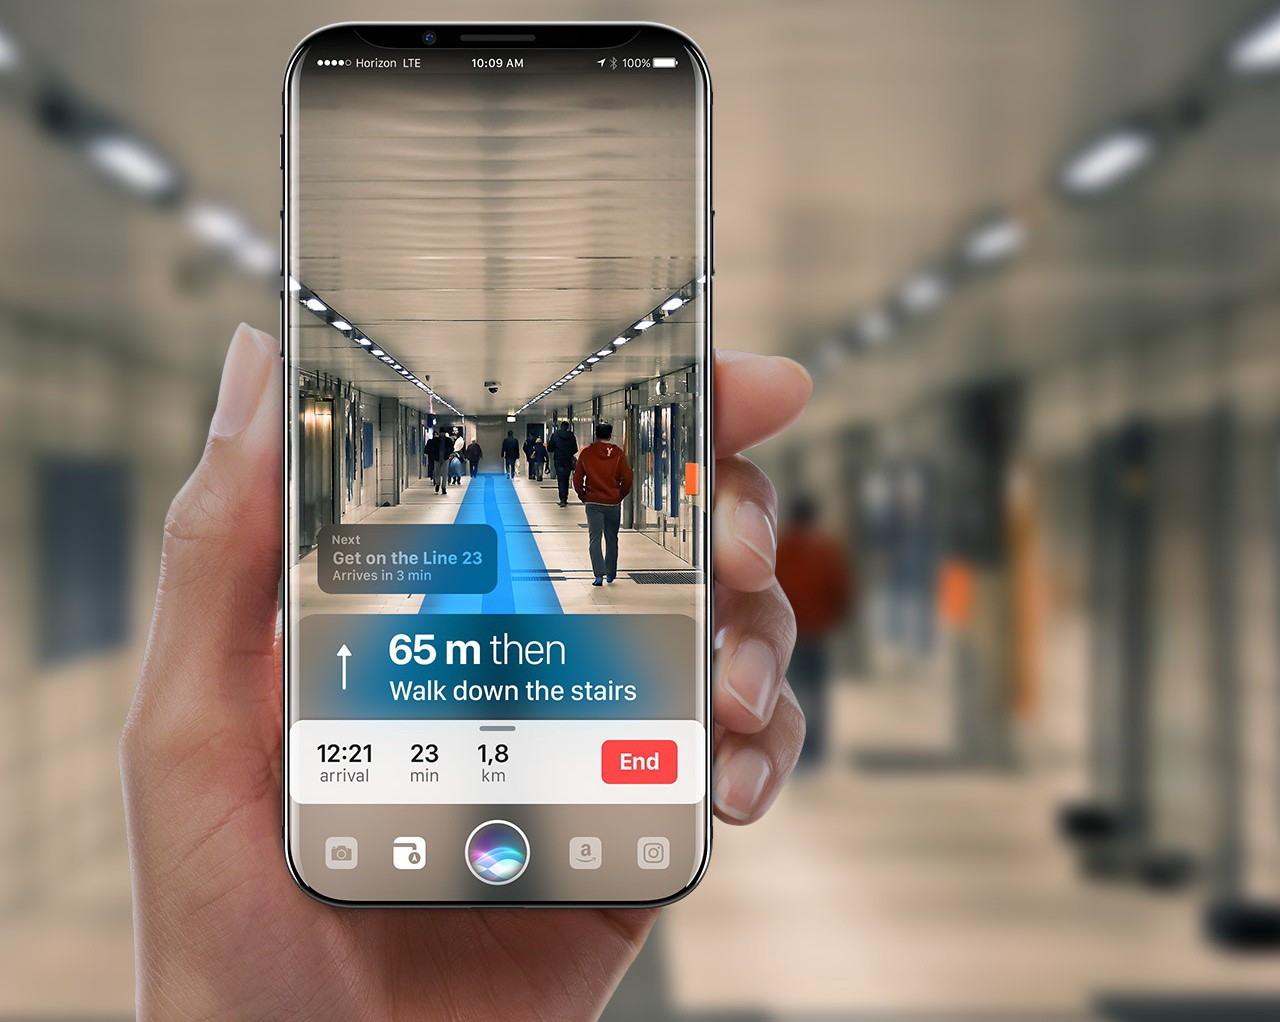 future technology in mobile phones. iphone ar mockup. // source: gábor balogh future technology in mobile phones